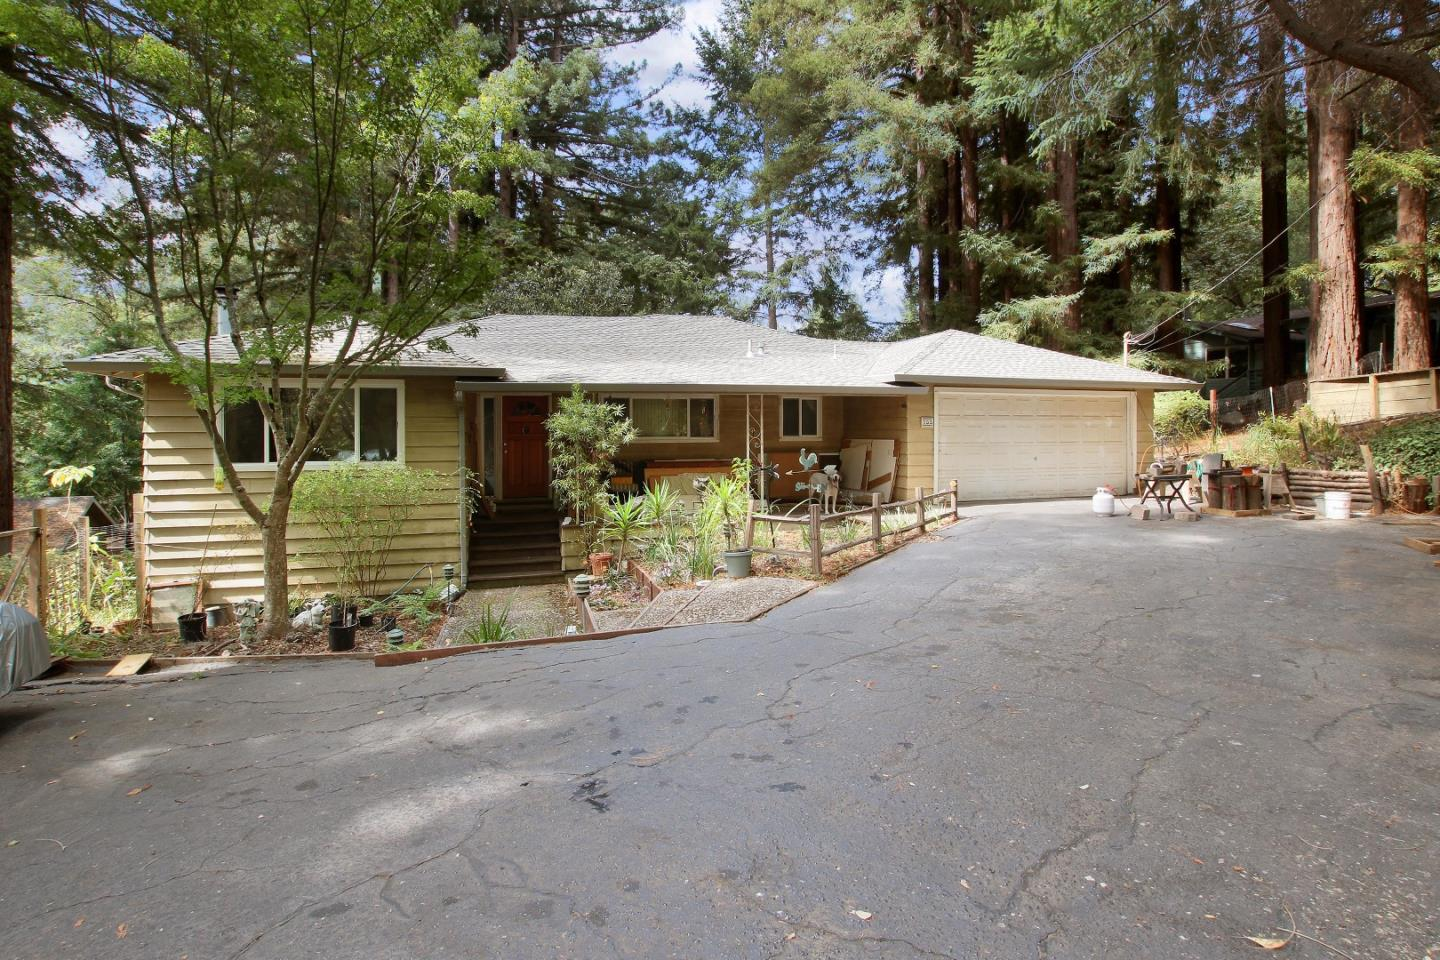 Beverly Hills of Boulder Creek! Classic mid century contemporary nestled up Highland splashed in sunshine and shade, with plenty of room to create gardens and more. Well built and some updates! Extra large living room with wood burning fireplace insert, views and privacy. large bedrooms. Large two car garage with plenty of parking in the driveway. Opportunities below an unfinished basement area with plenty storage on a concrete floor and standing headroom! Perhaps a man or woman cave, create living space for family & friends, make a workspace or home theatre! Spacious back yard with room to entertain and play. This property provides great utility for those seeking outside environments room to create and entertain. This very charming home and setting in one of the best mountain neighborhoods in Boulder Creek just 5 minutes from town. All of the convenience of being near to town but with the privacy. This is a move in ready home ready for a new owners to add sparkle!